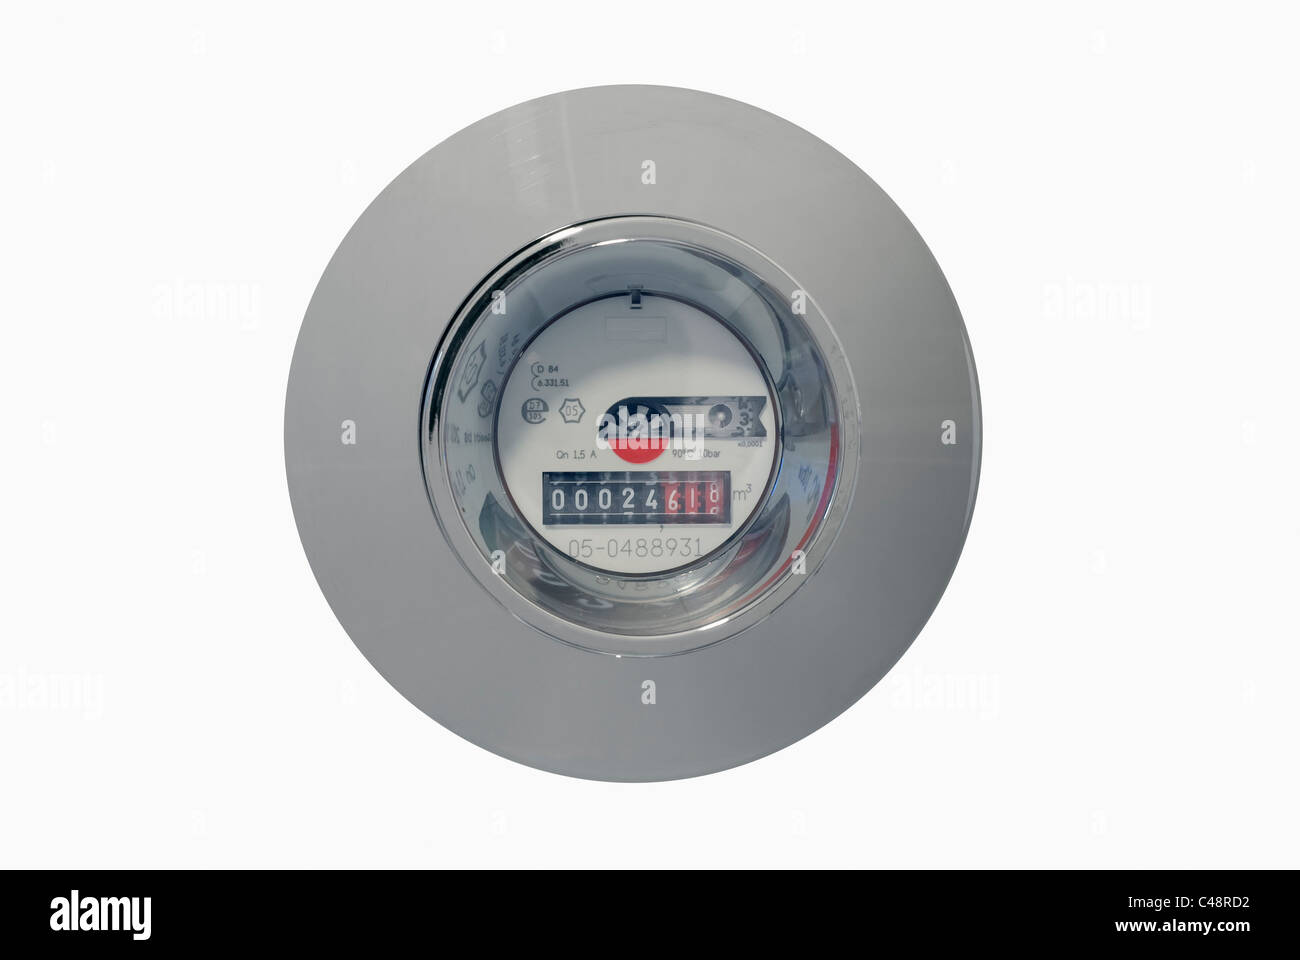 Water Meter Isolated on White for Easy Cutout - Stock Image